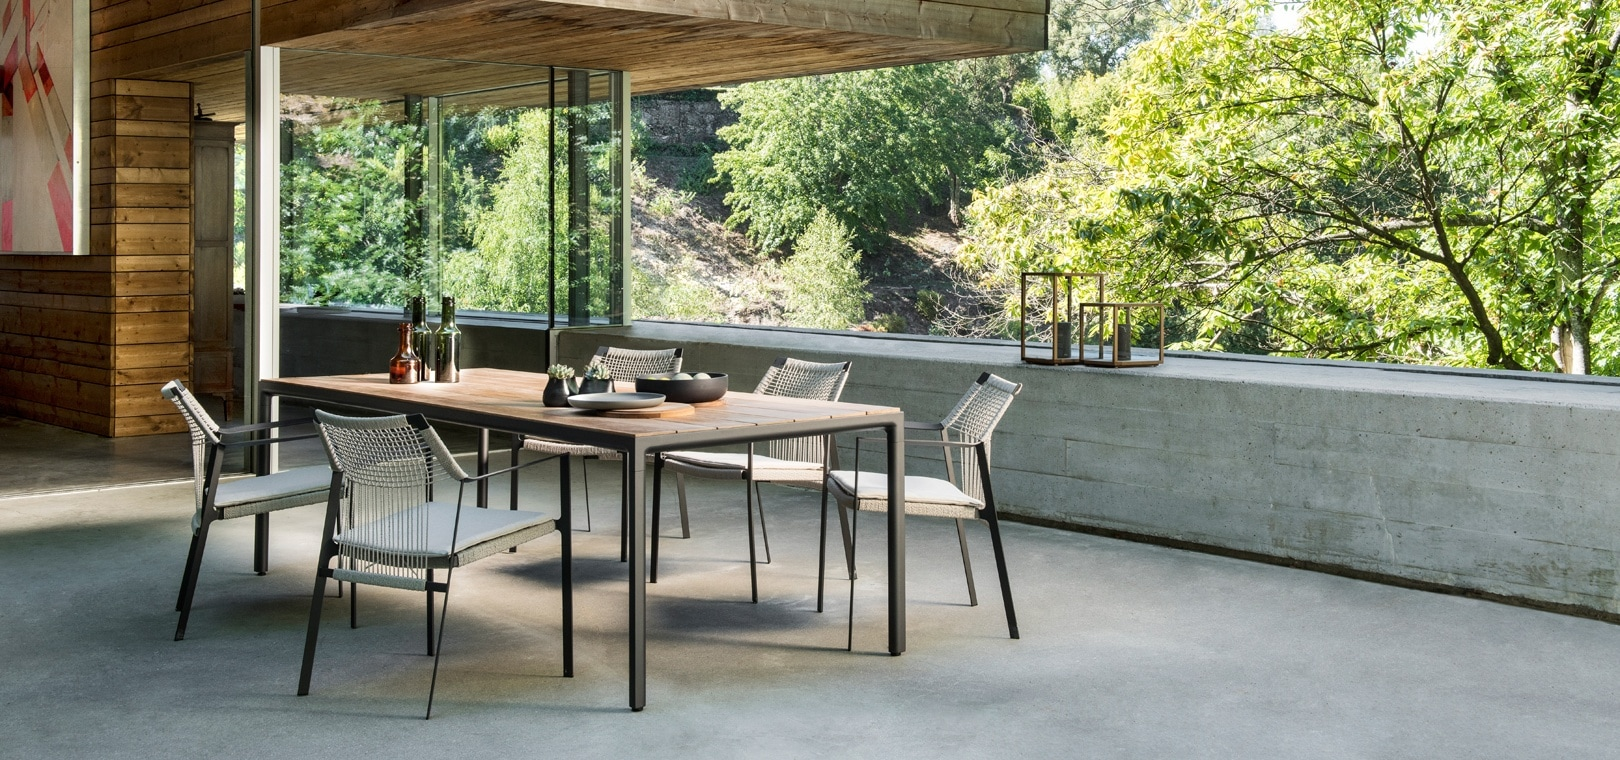 Nodi High end outdoor furniture collection by Tribu